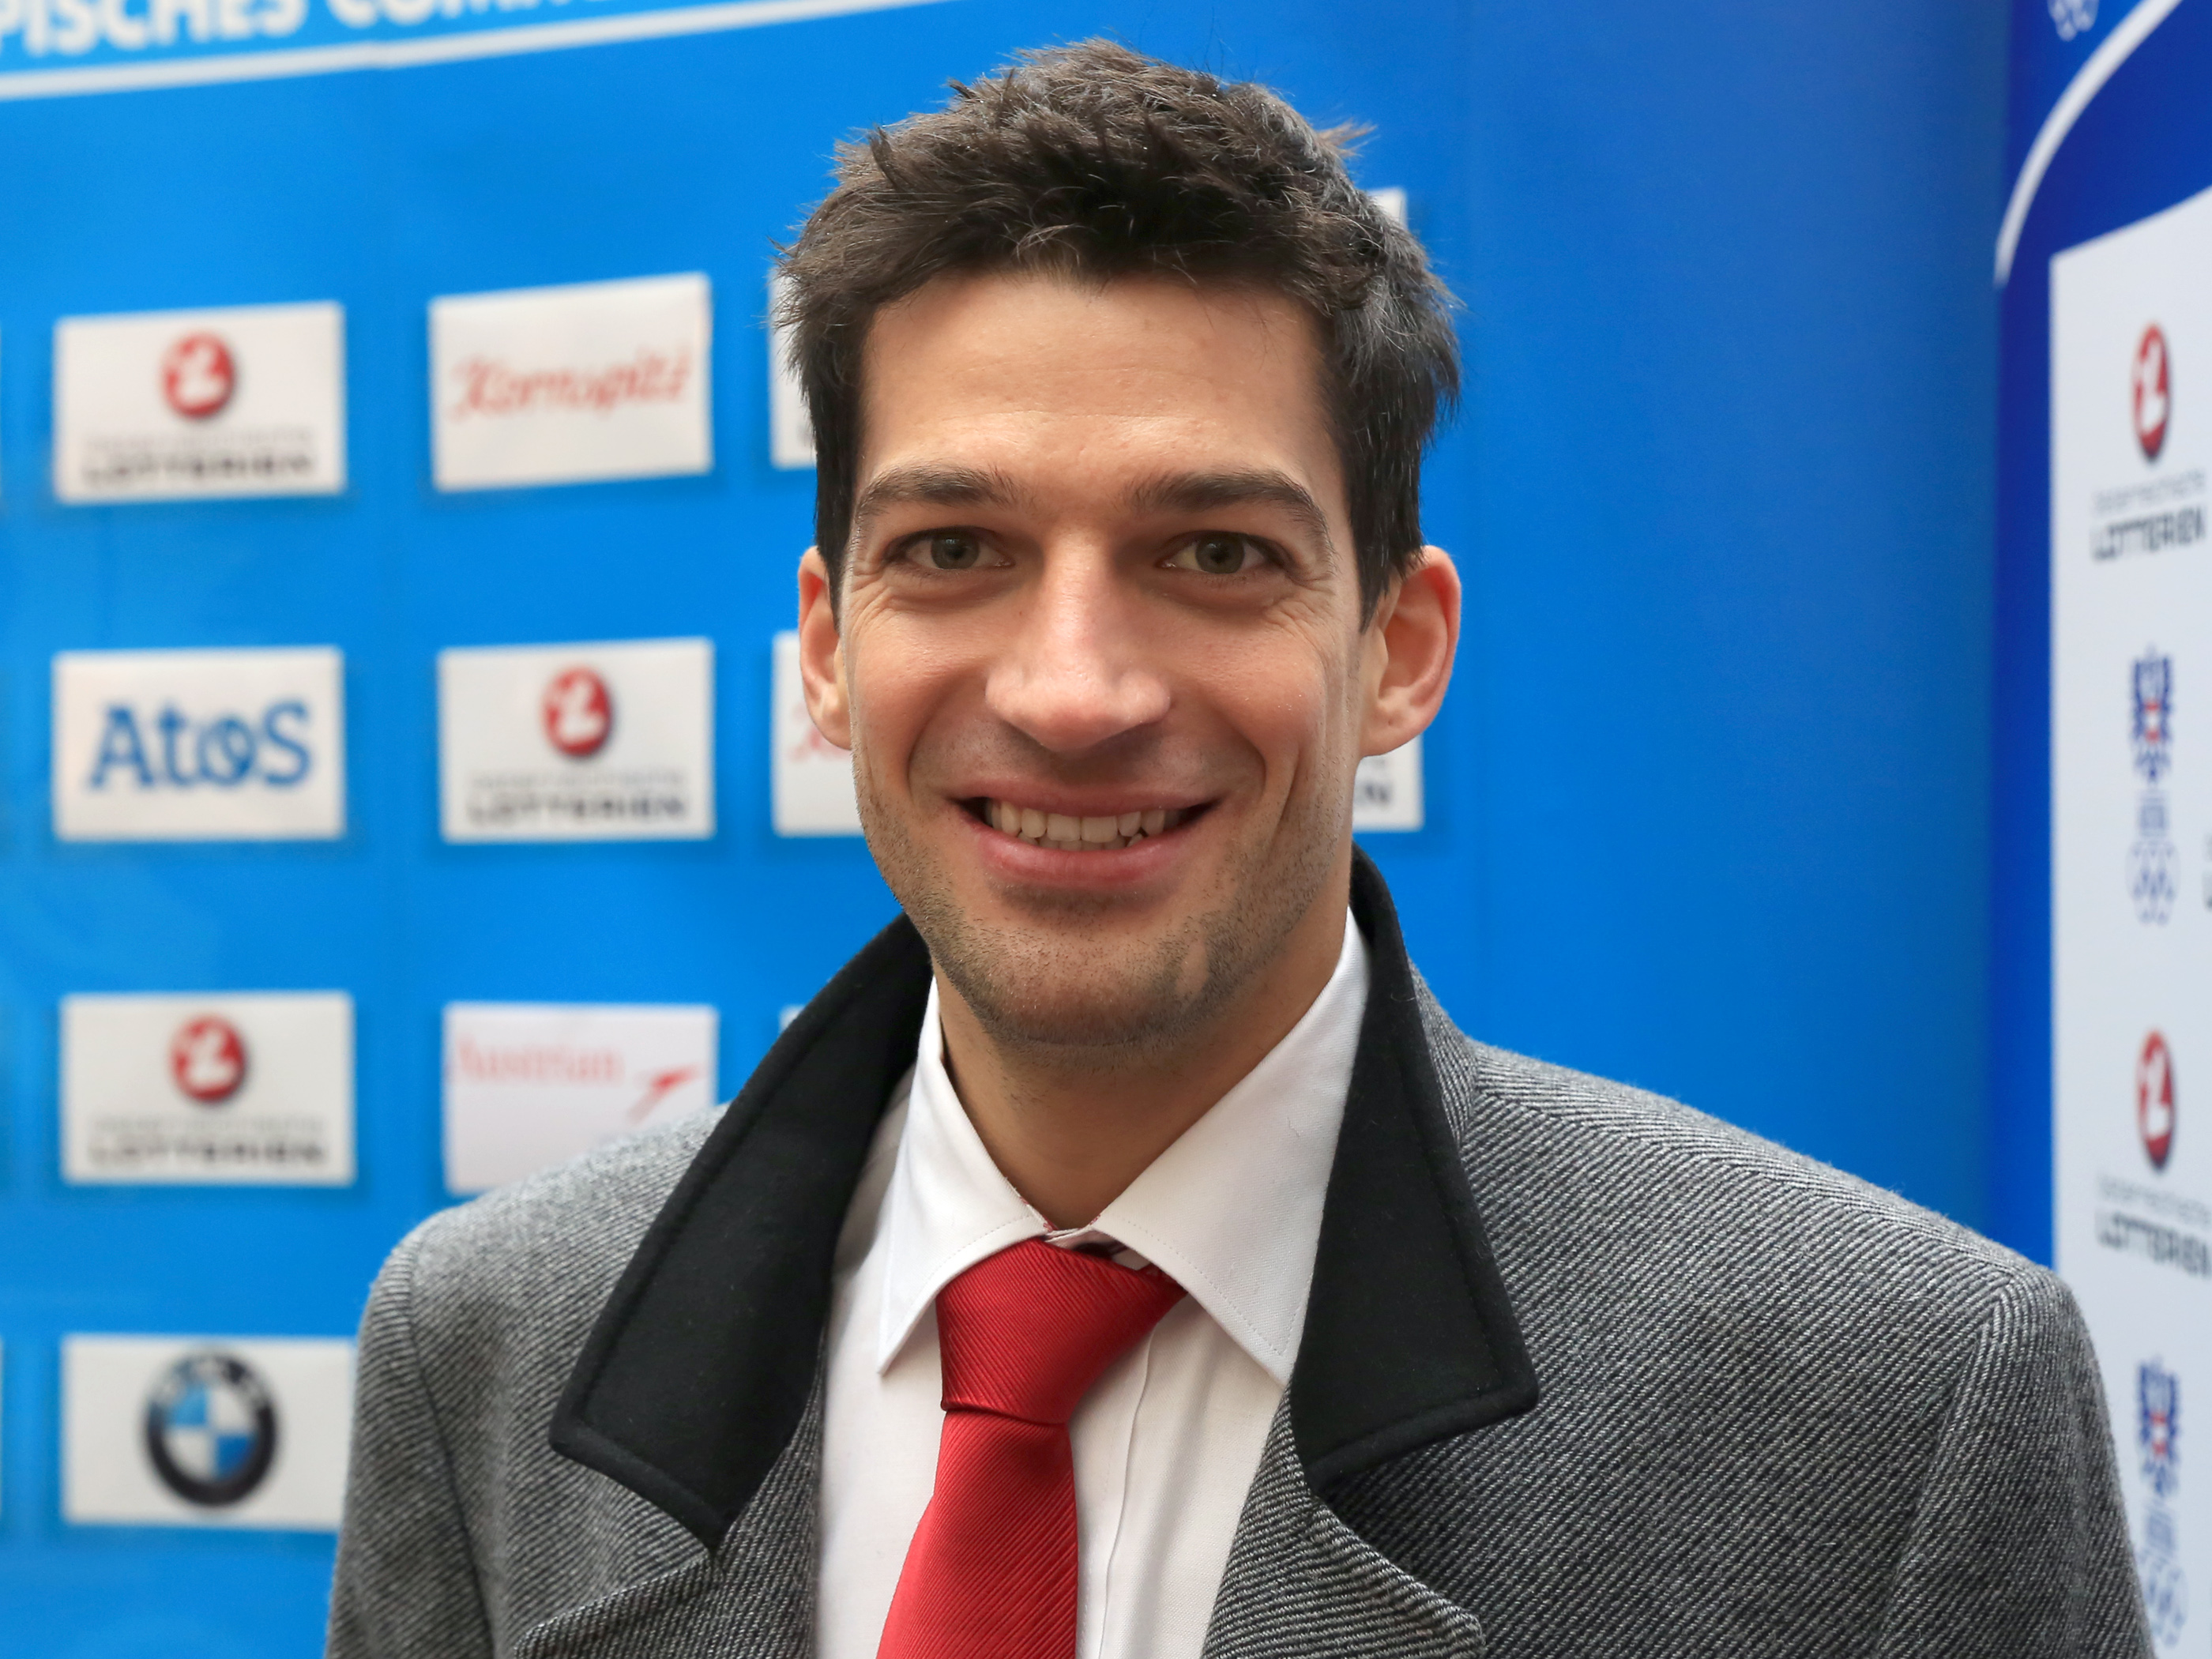 andreas köfer